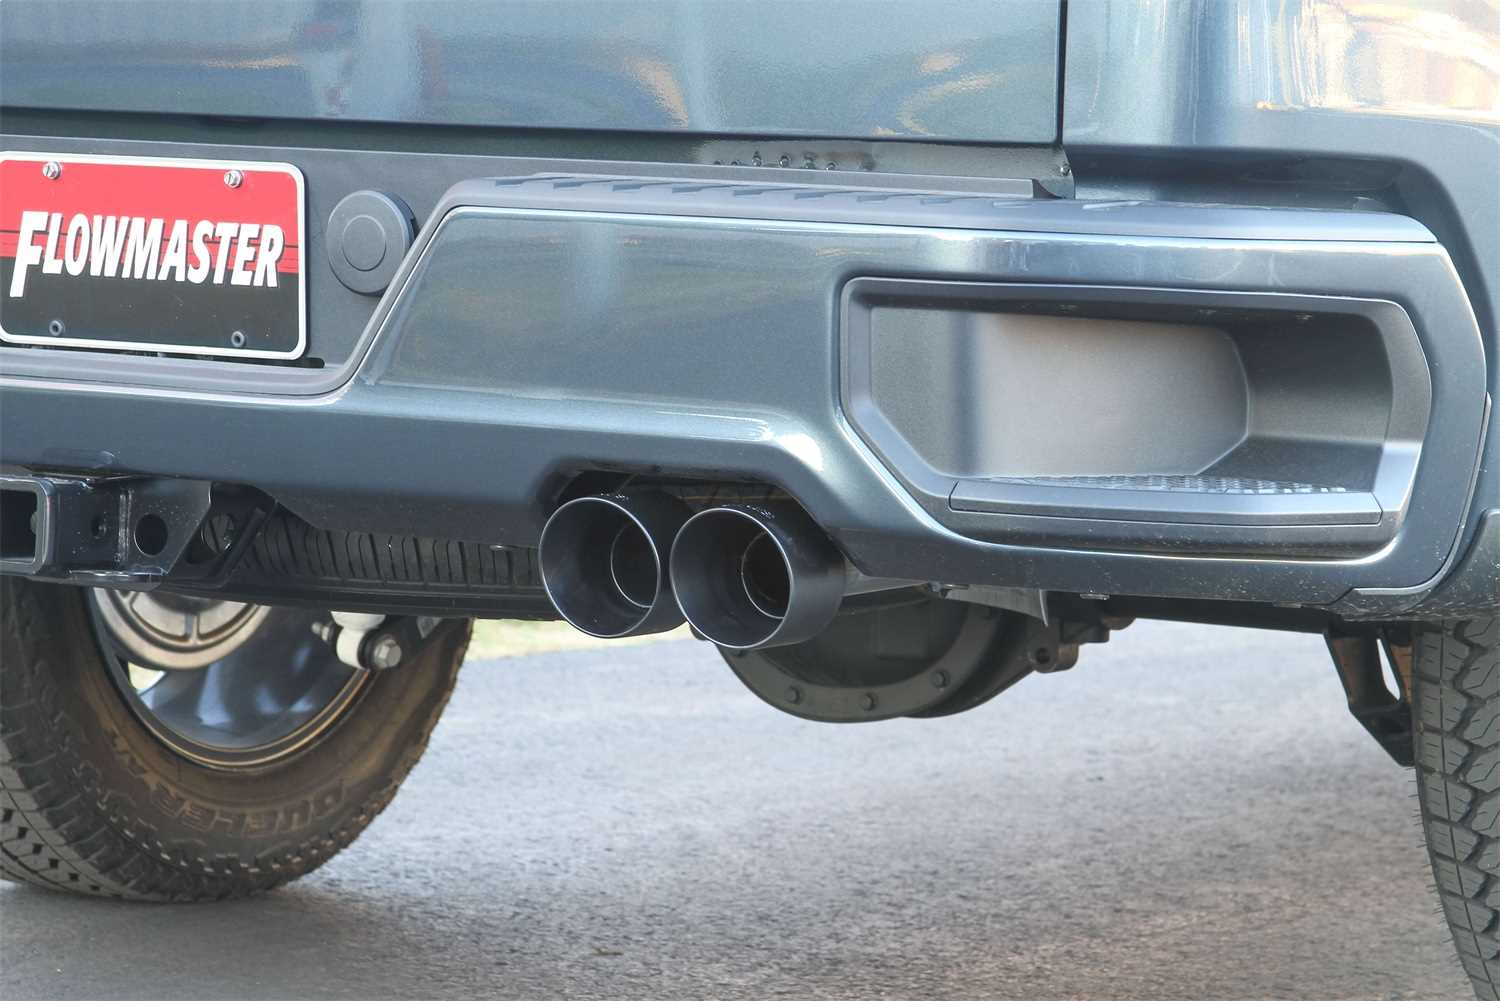 817895 Flowmaster American Thunder Cat Back Exhaust System